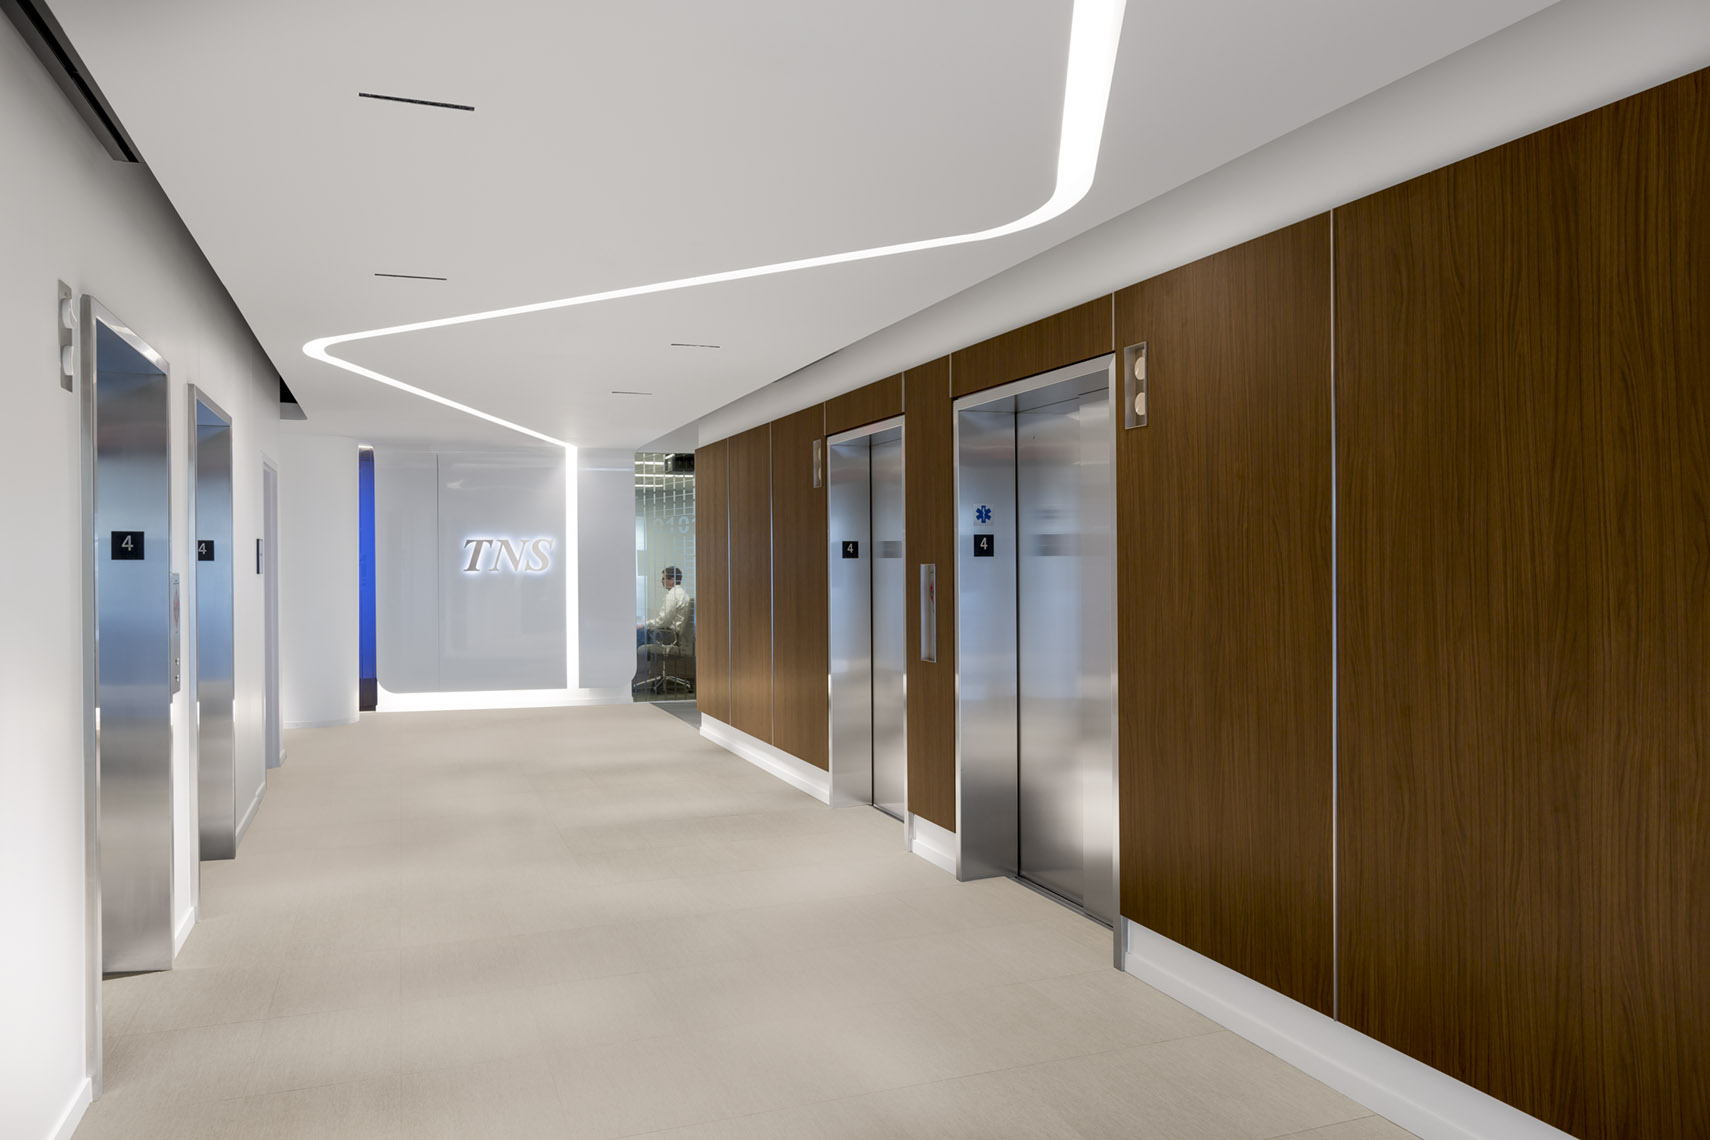 architectural photograph of office interior by Dan Poyourow